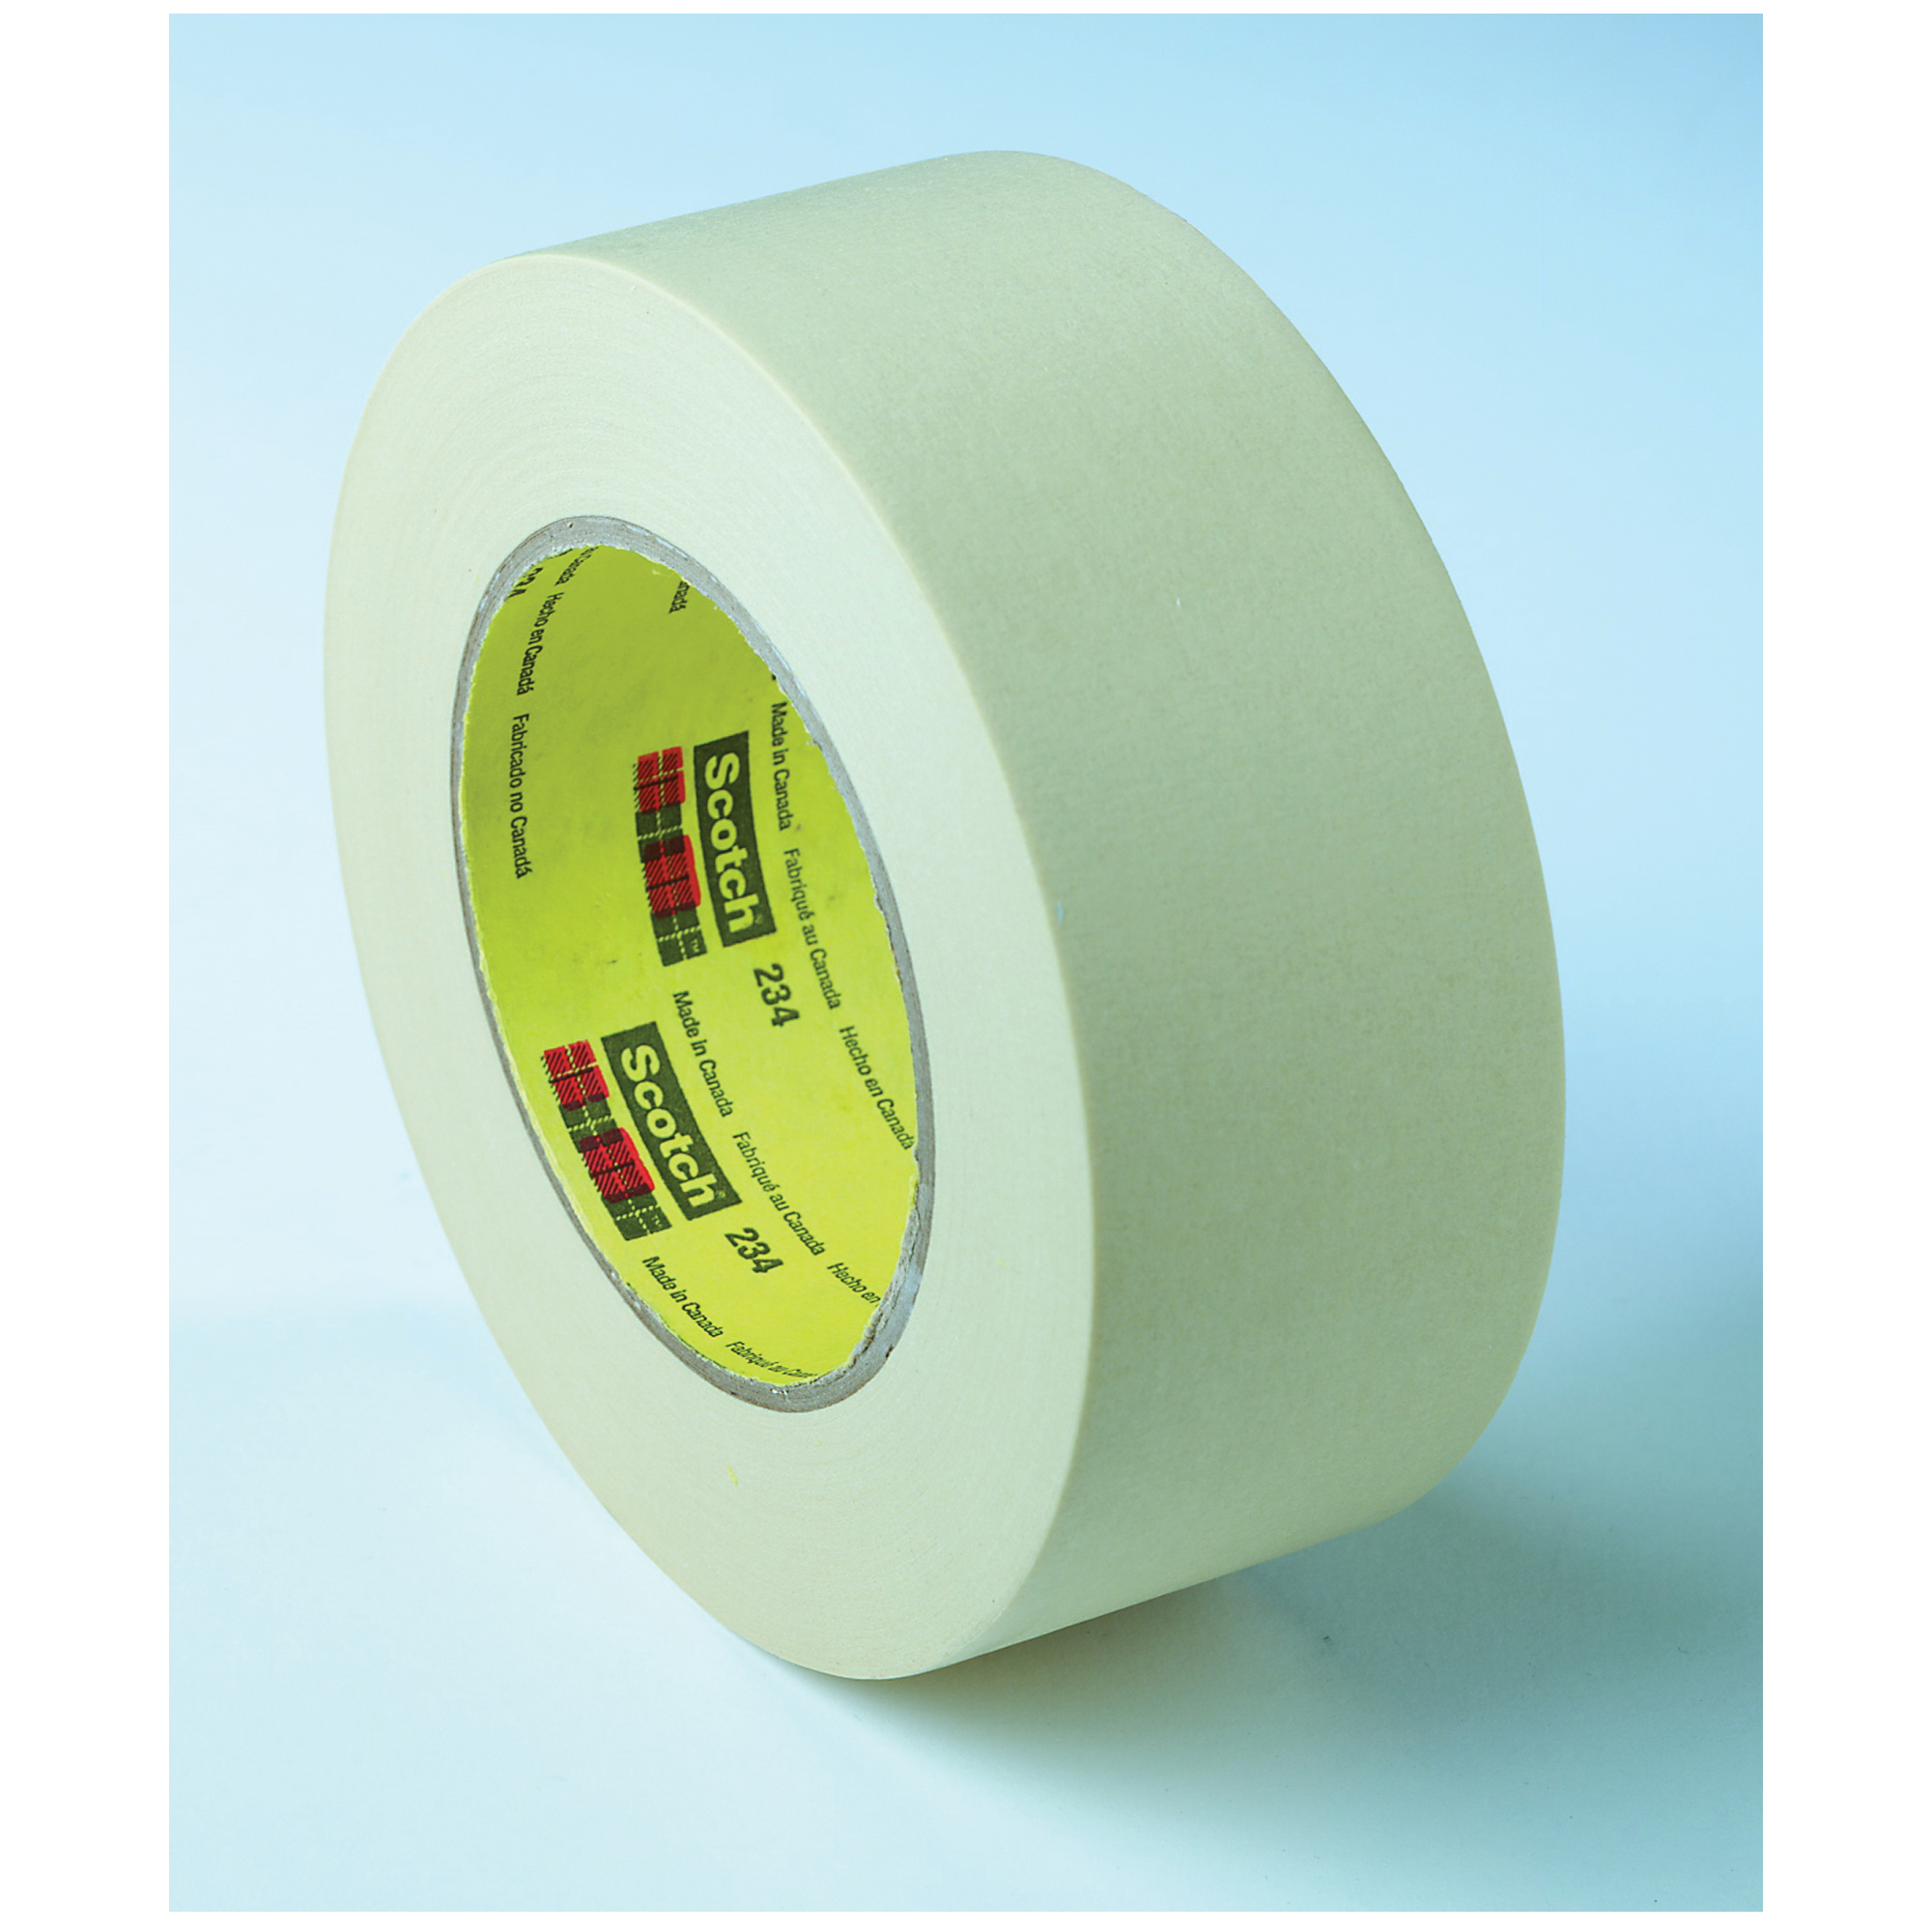 3M™ 234-30mmx55m General Purpose Masking Tape, 55 m L x 30 mm W, 5.9 mil THK, Rubber Adhesive, Crepe Paper Backing